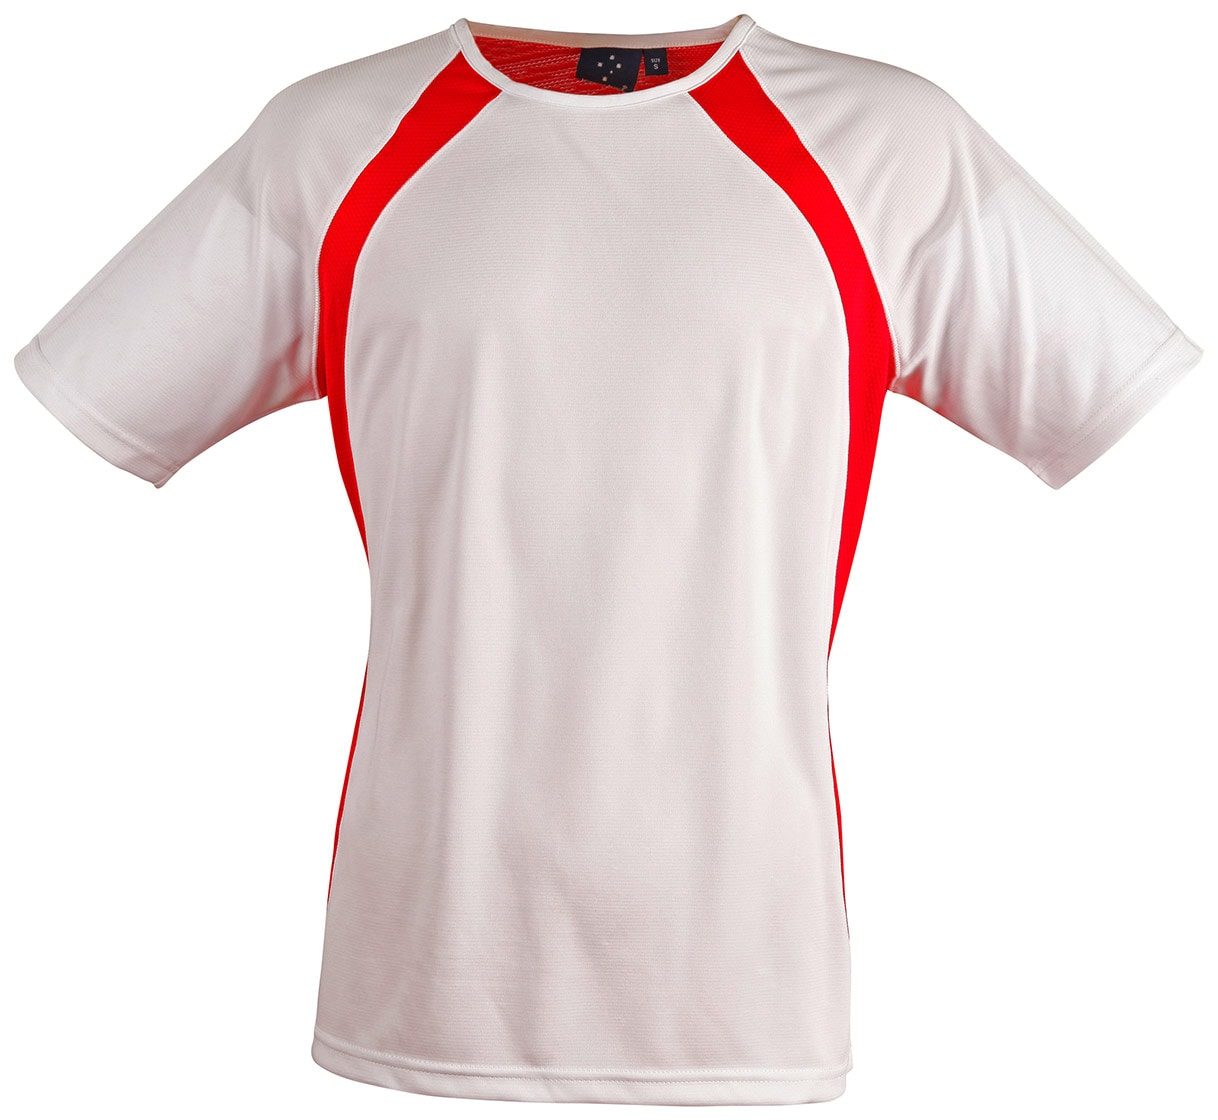 TS71_WhiteRed